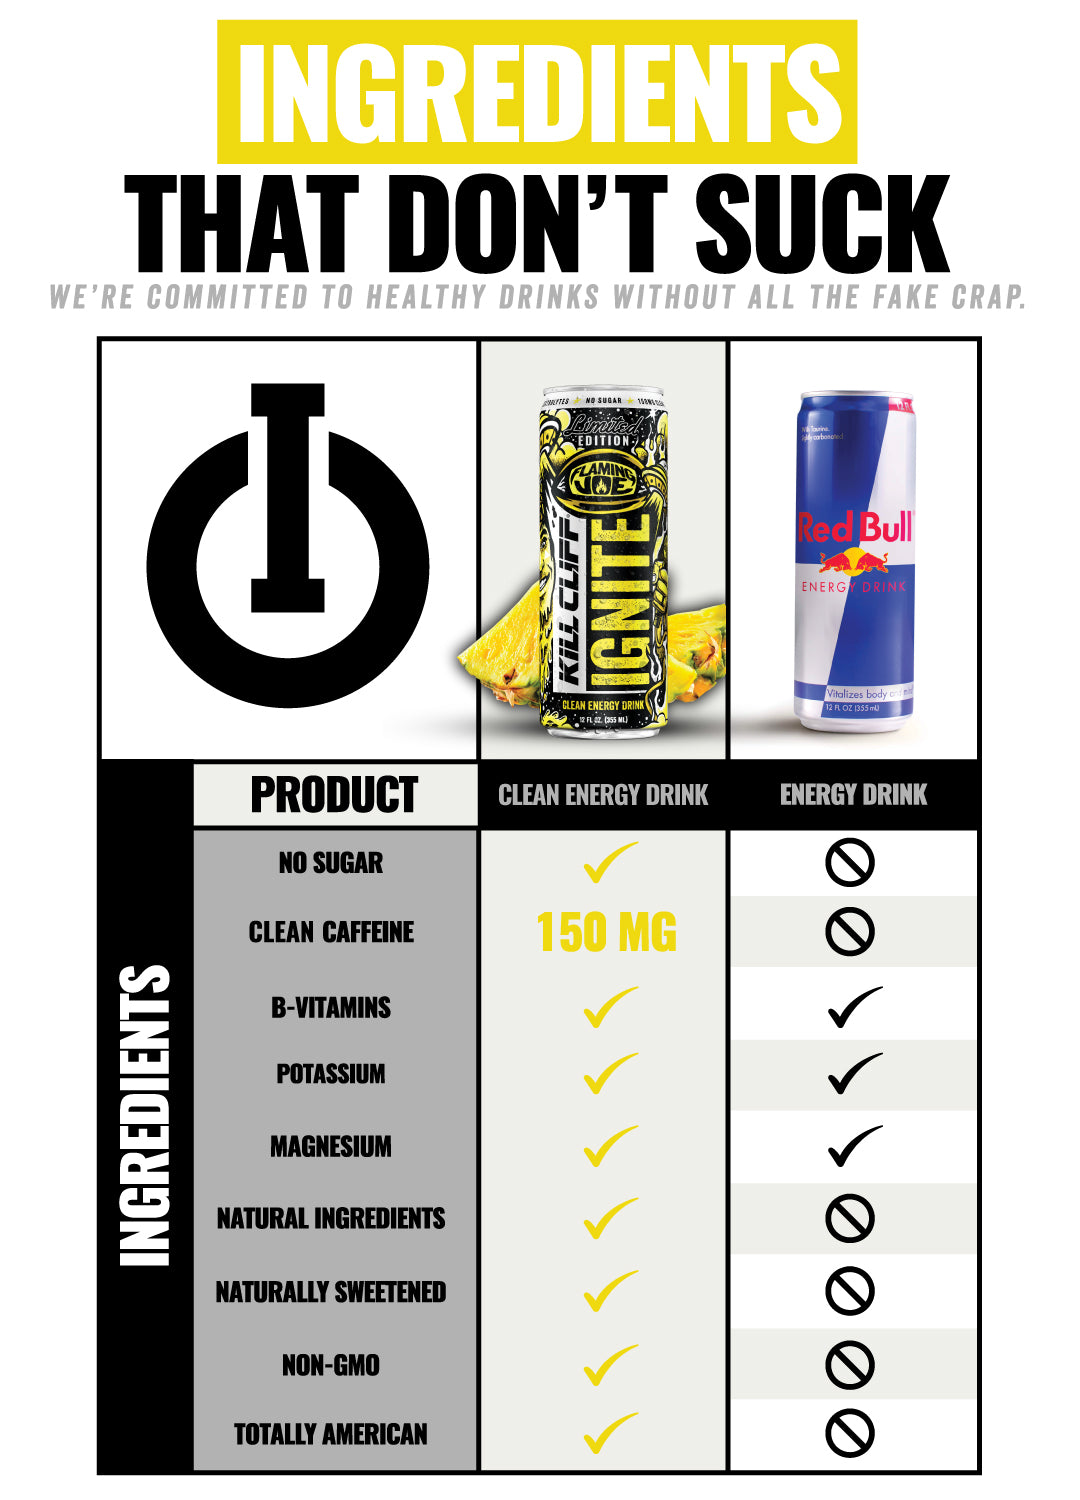 Ingredients that don't suck. We are committed to healthy drinks without the fake crap.